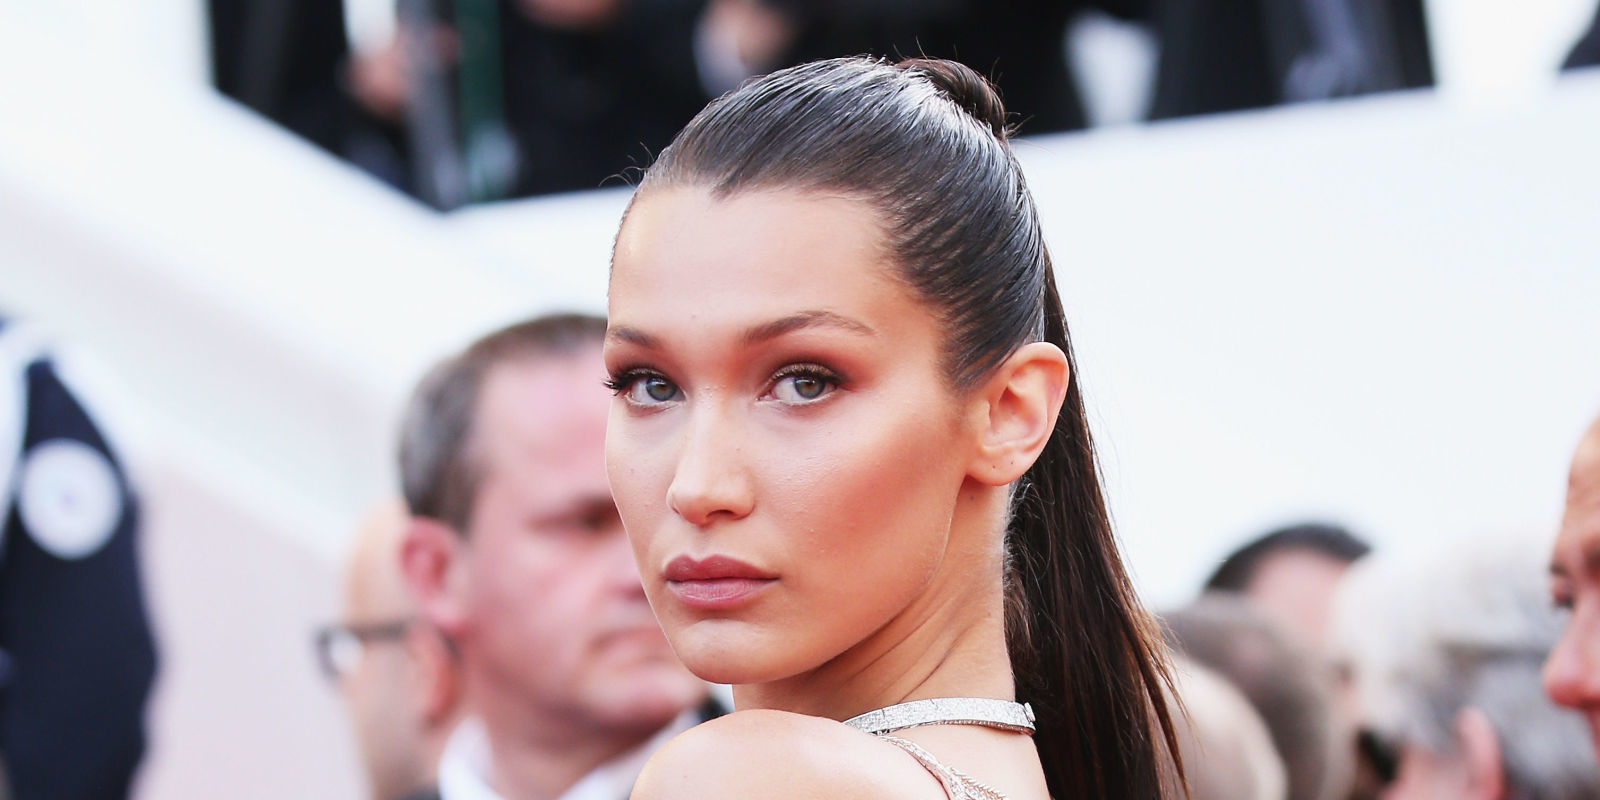 Here's Your First Look at Bella Hadid Slaying the Victoria's Secret Runway